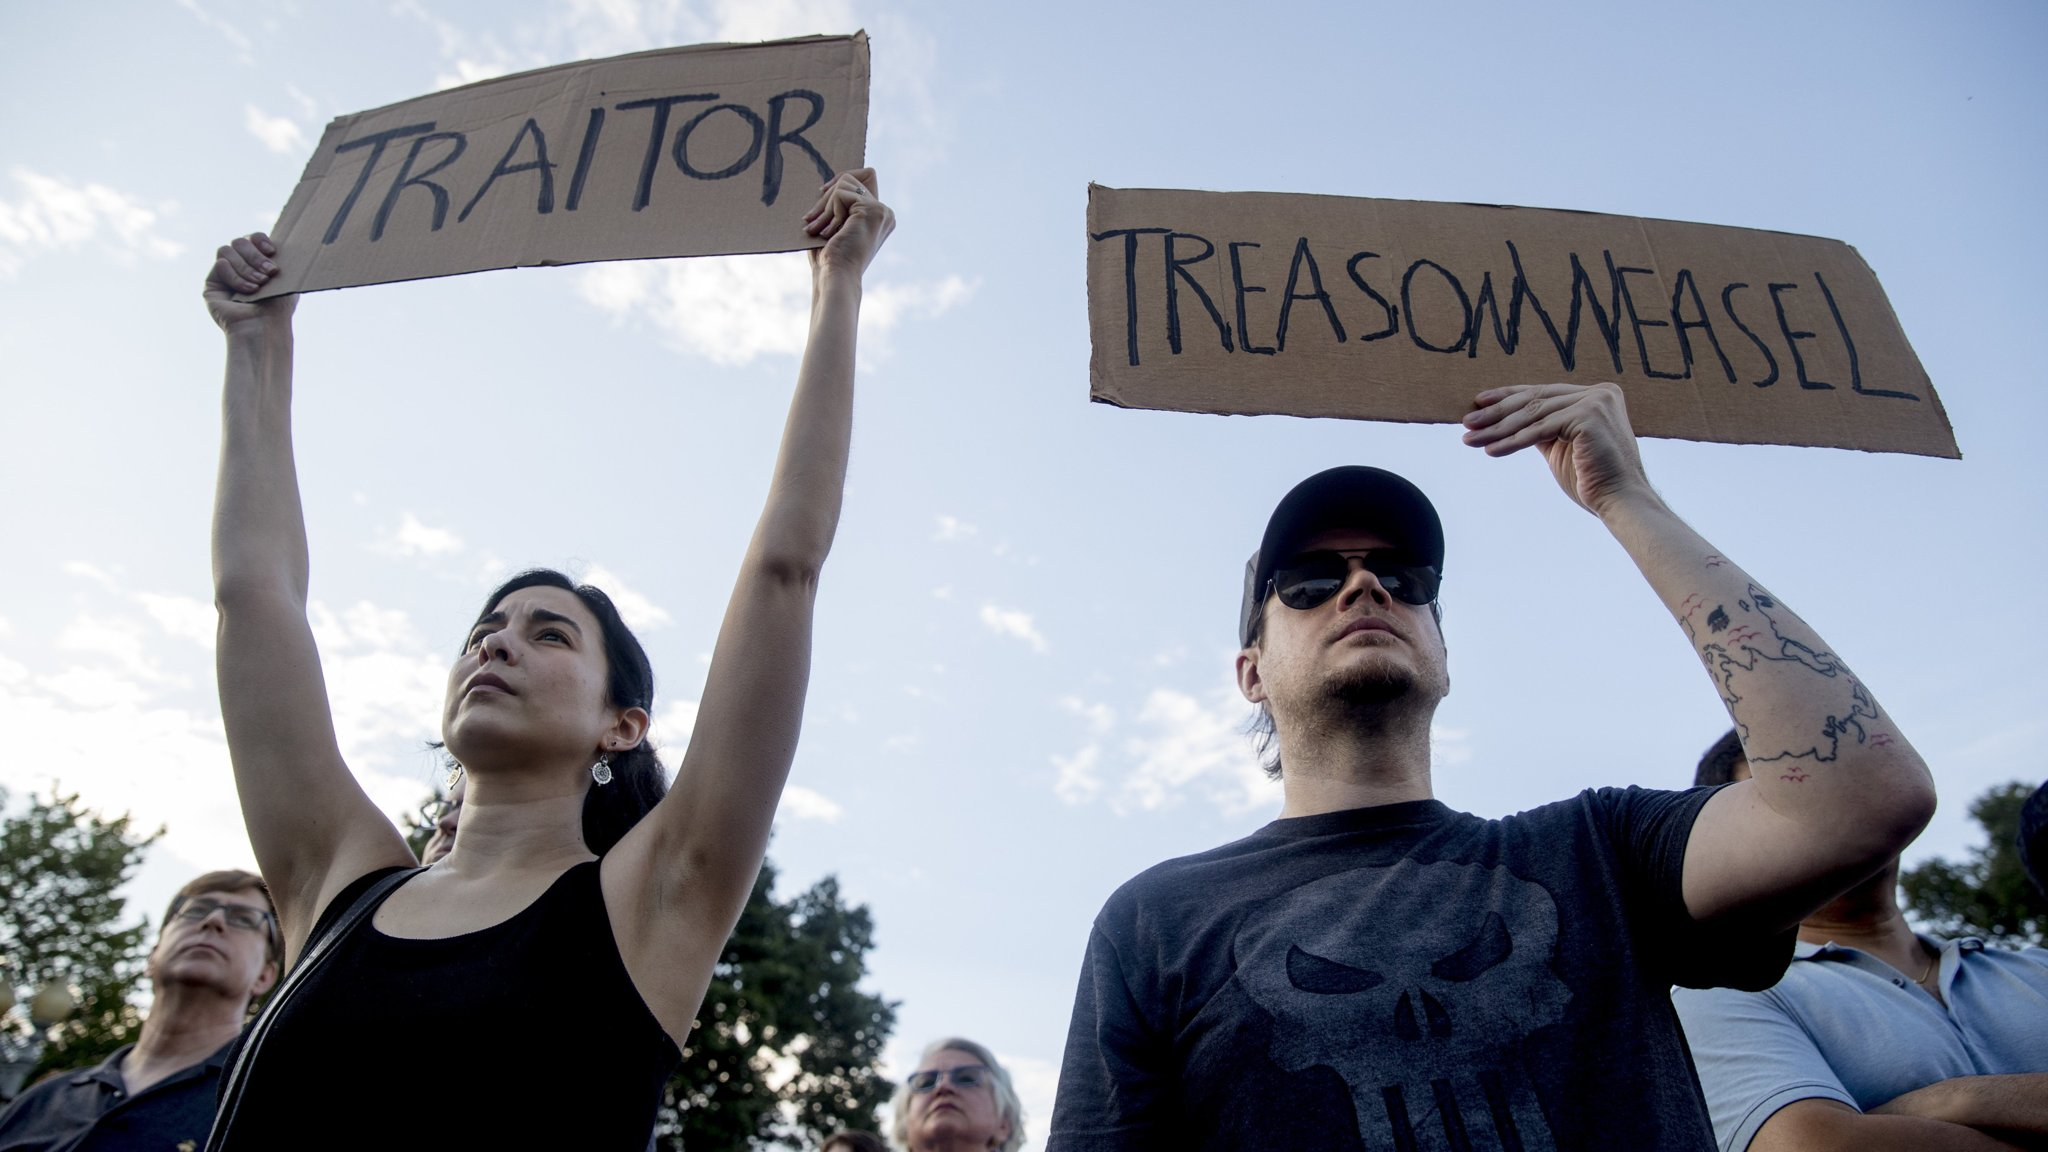 You need only 5 minutes and one technique to learn about treason (according to science)